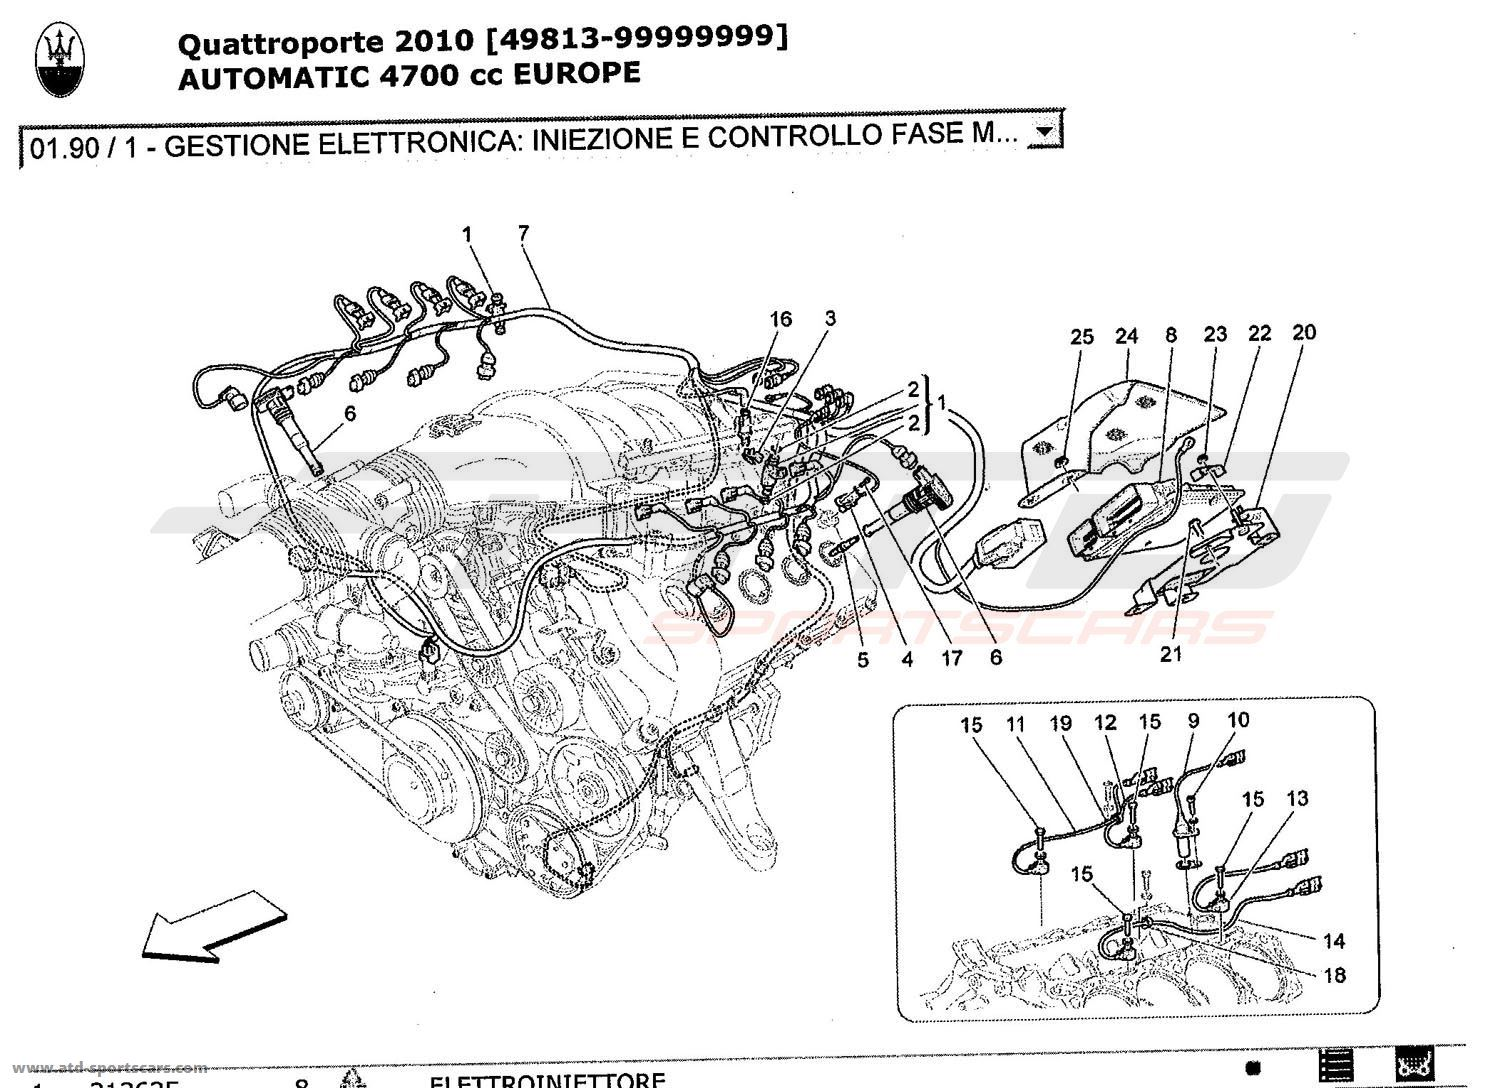 2010 Vw Jetta Air Conditioning Wiring Diagram. Diagram